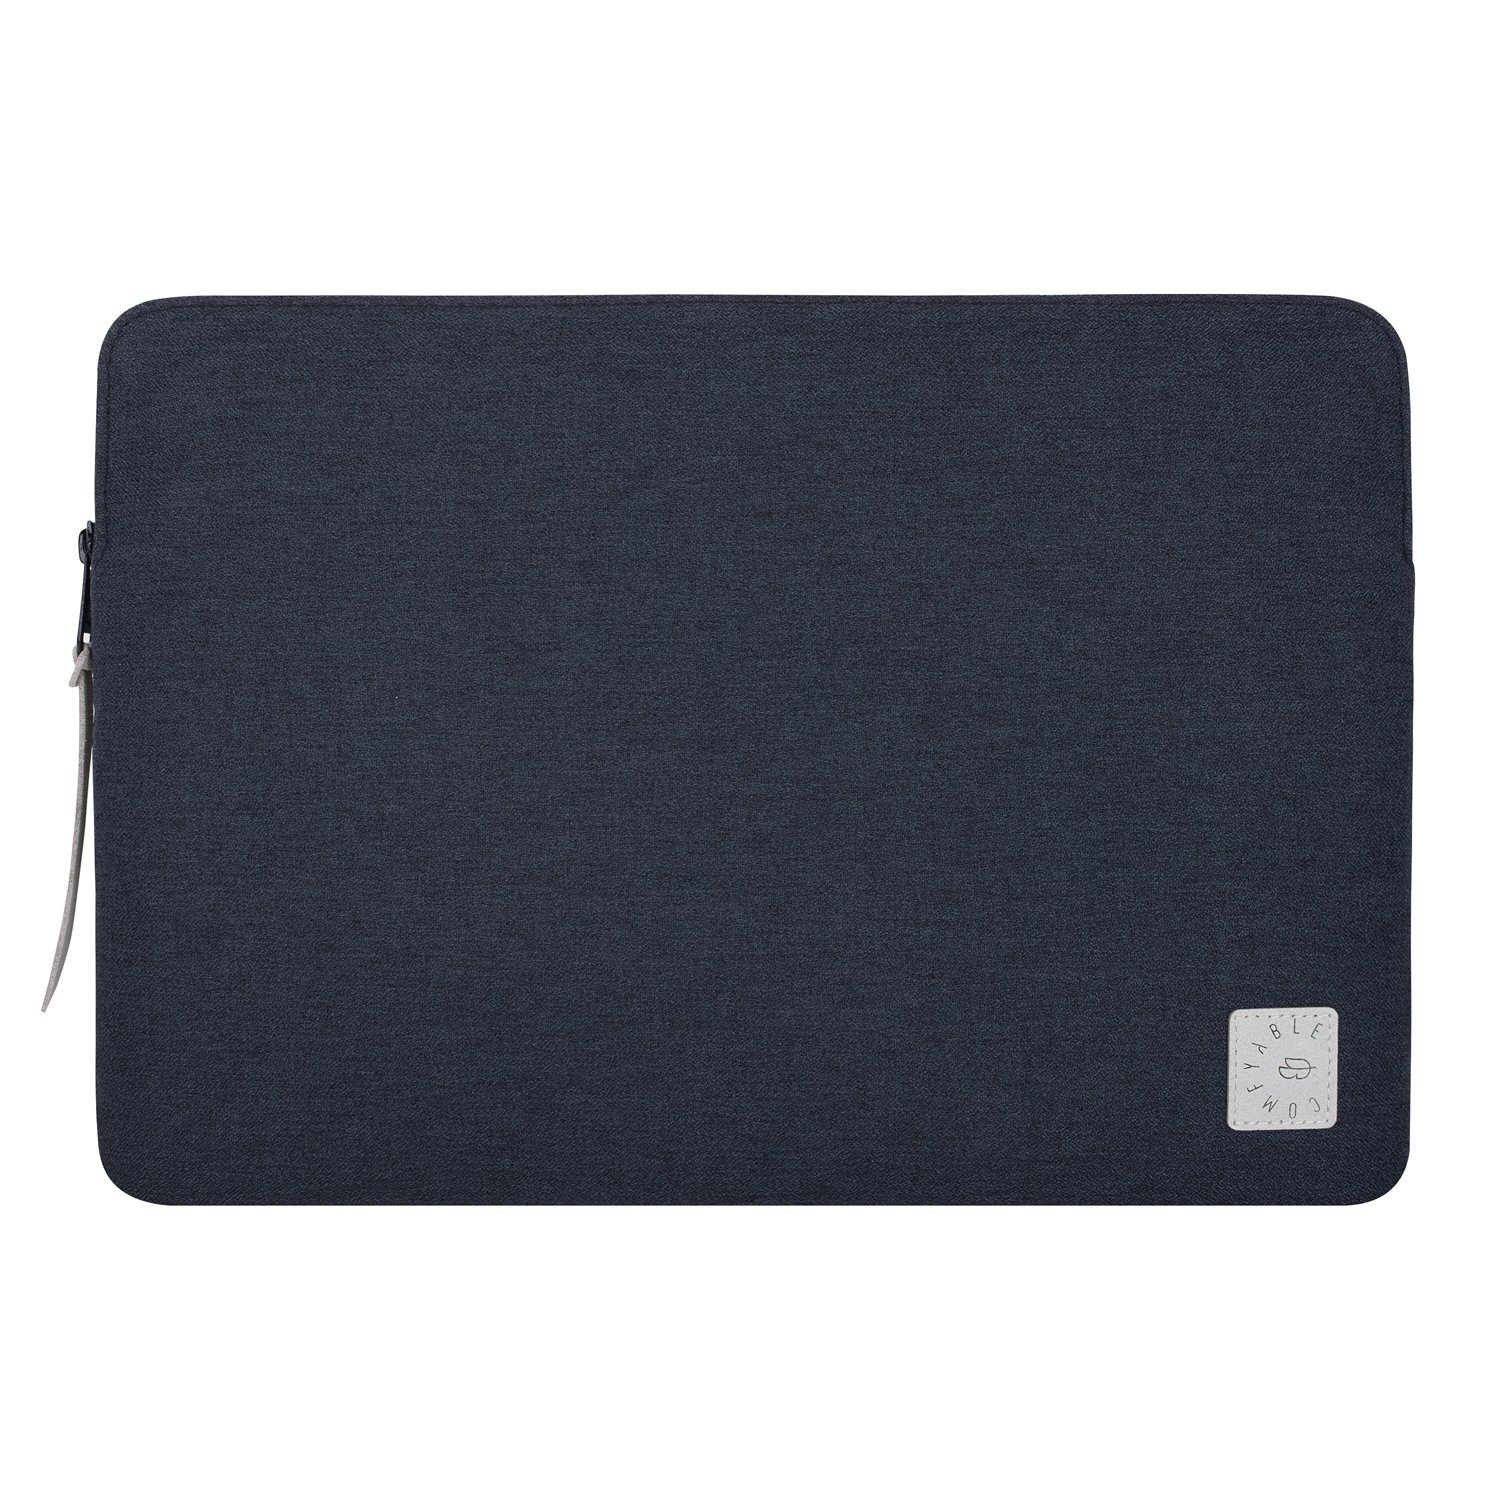 Comfyable Laptop Sleeve for 13 inch New MacBook Pro 2016 & 2017- Waterproof Mac Cover Case- Charcoal Blue